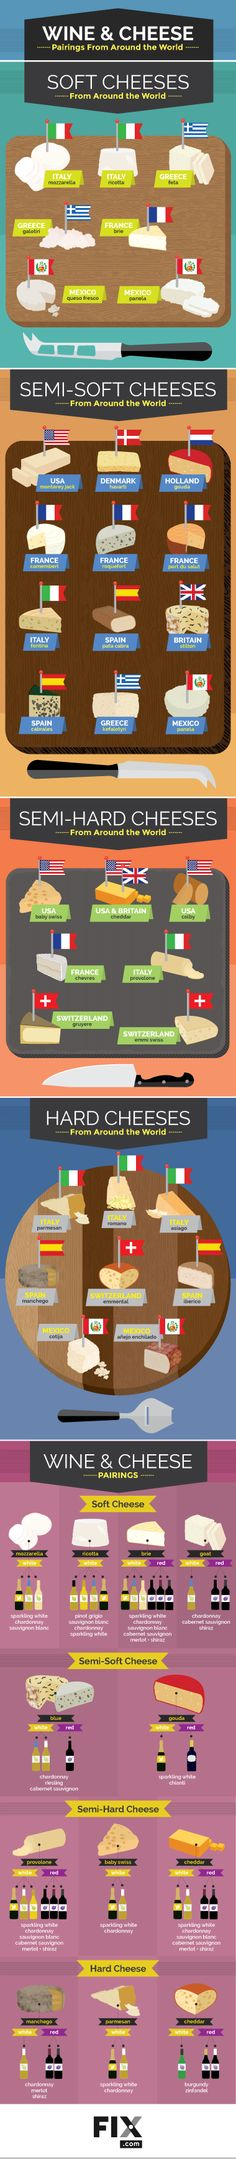 Wine and Cheese Pairings from Around the World | Fix.com                                                                                                                                                                                 More